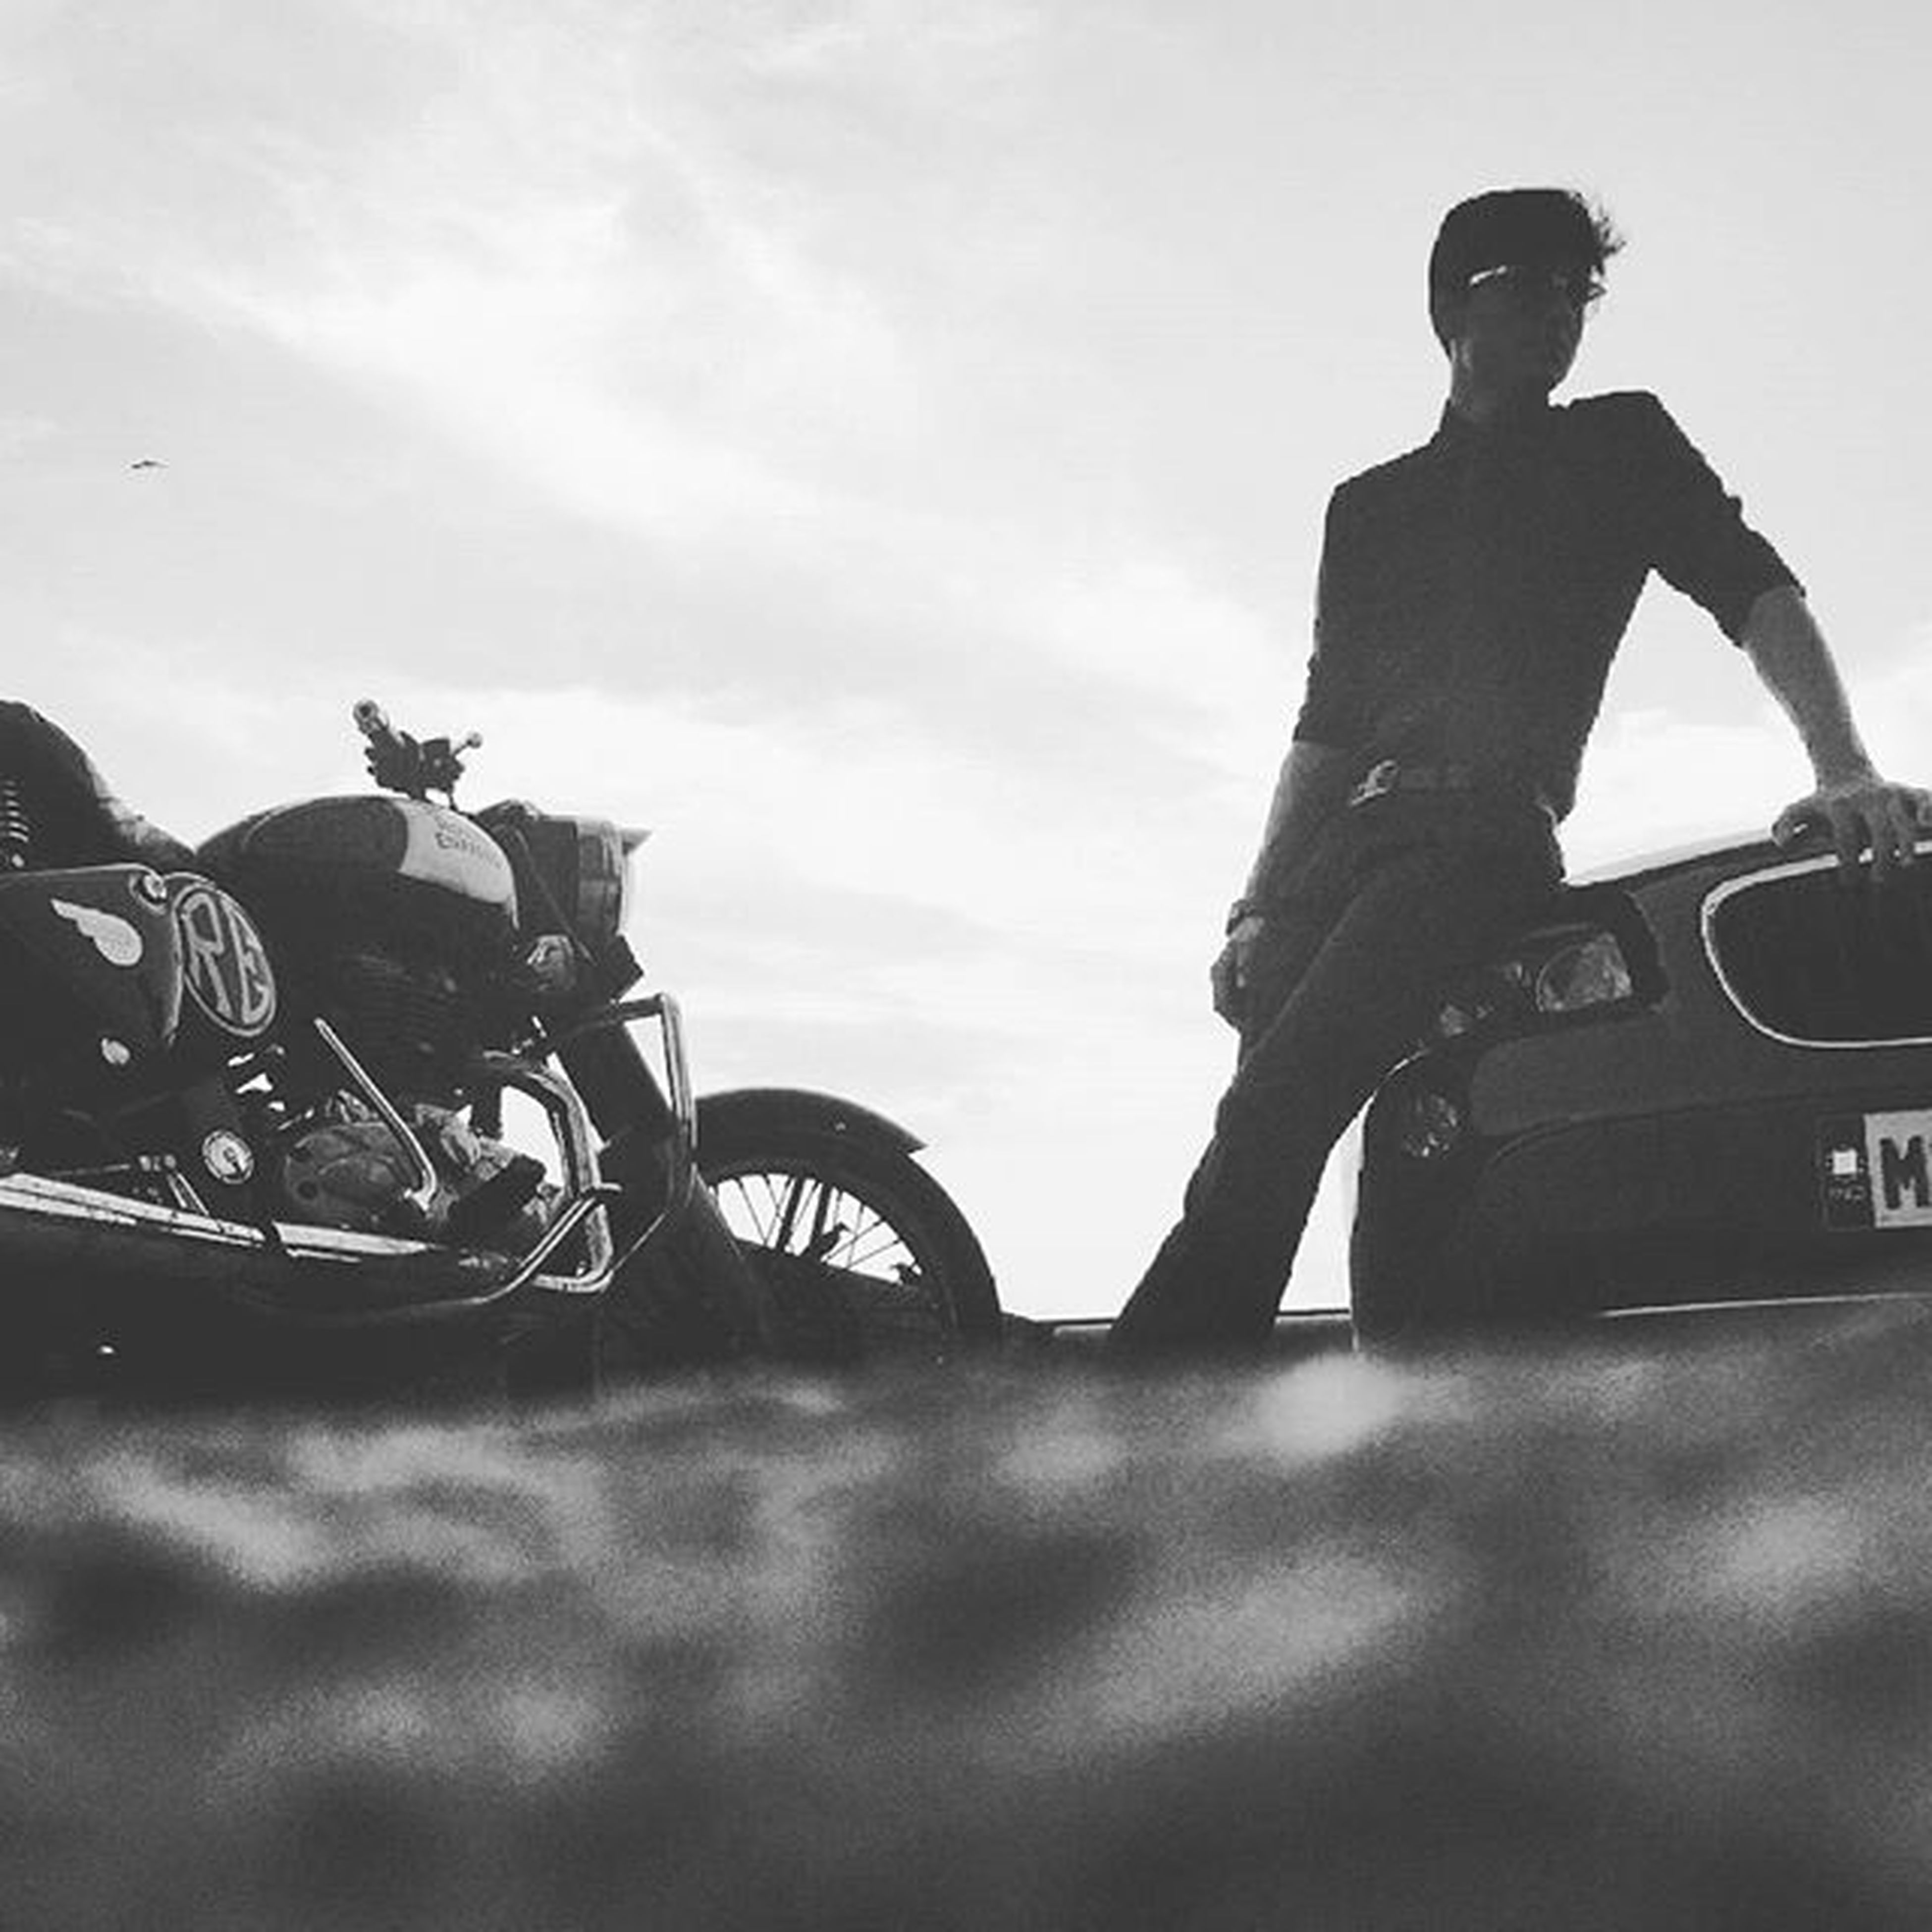 transportation, land vehicle, men, bicycle, mode of transport, lifestyles, sky, leisure activity, riding, side view, cycling, outdoors, holding, full length, day, motorcycle, silhouette